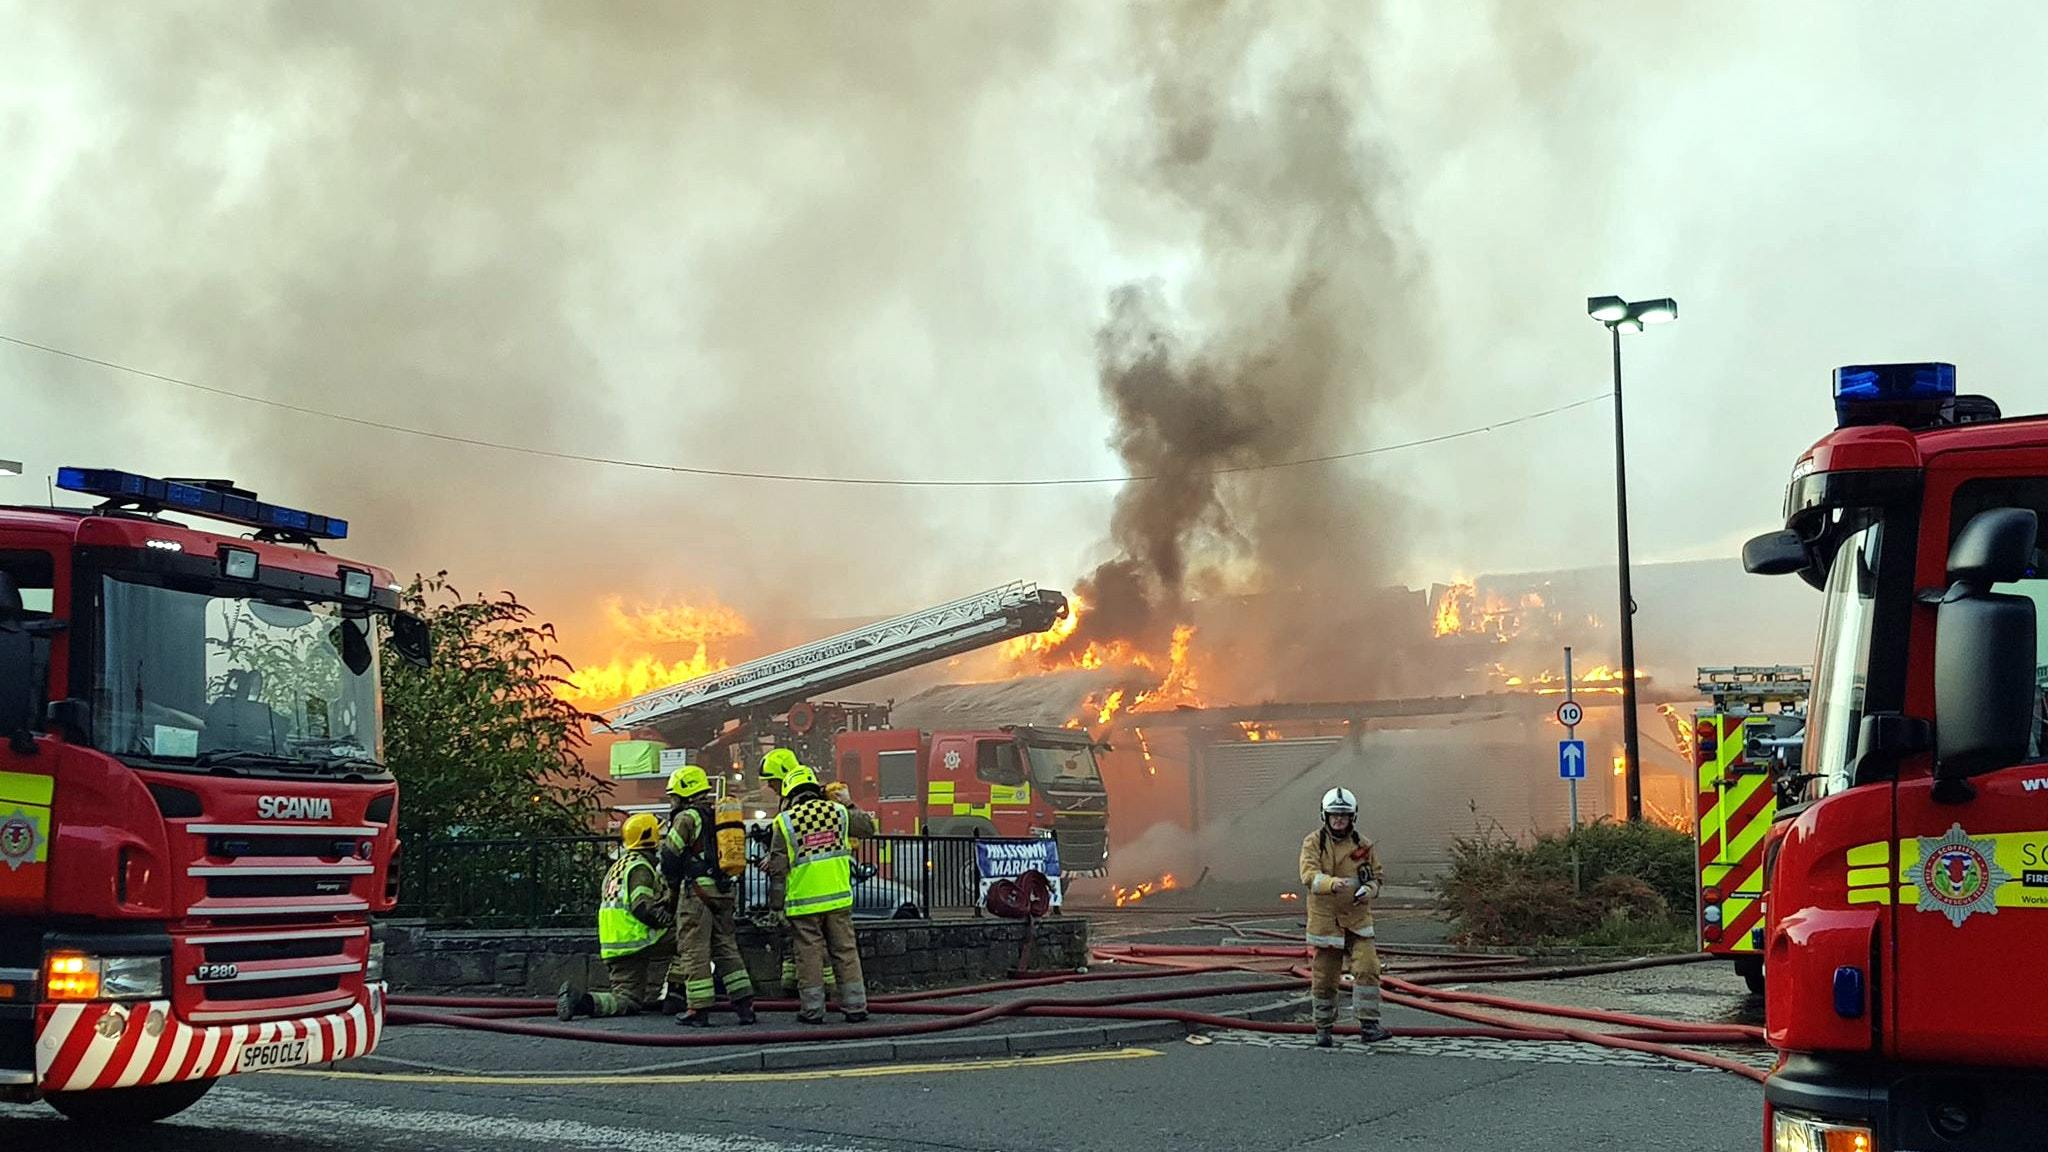 Firefighters attend the scene (PA)